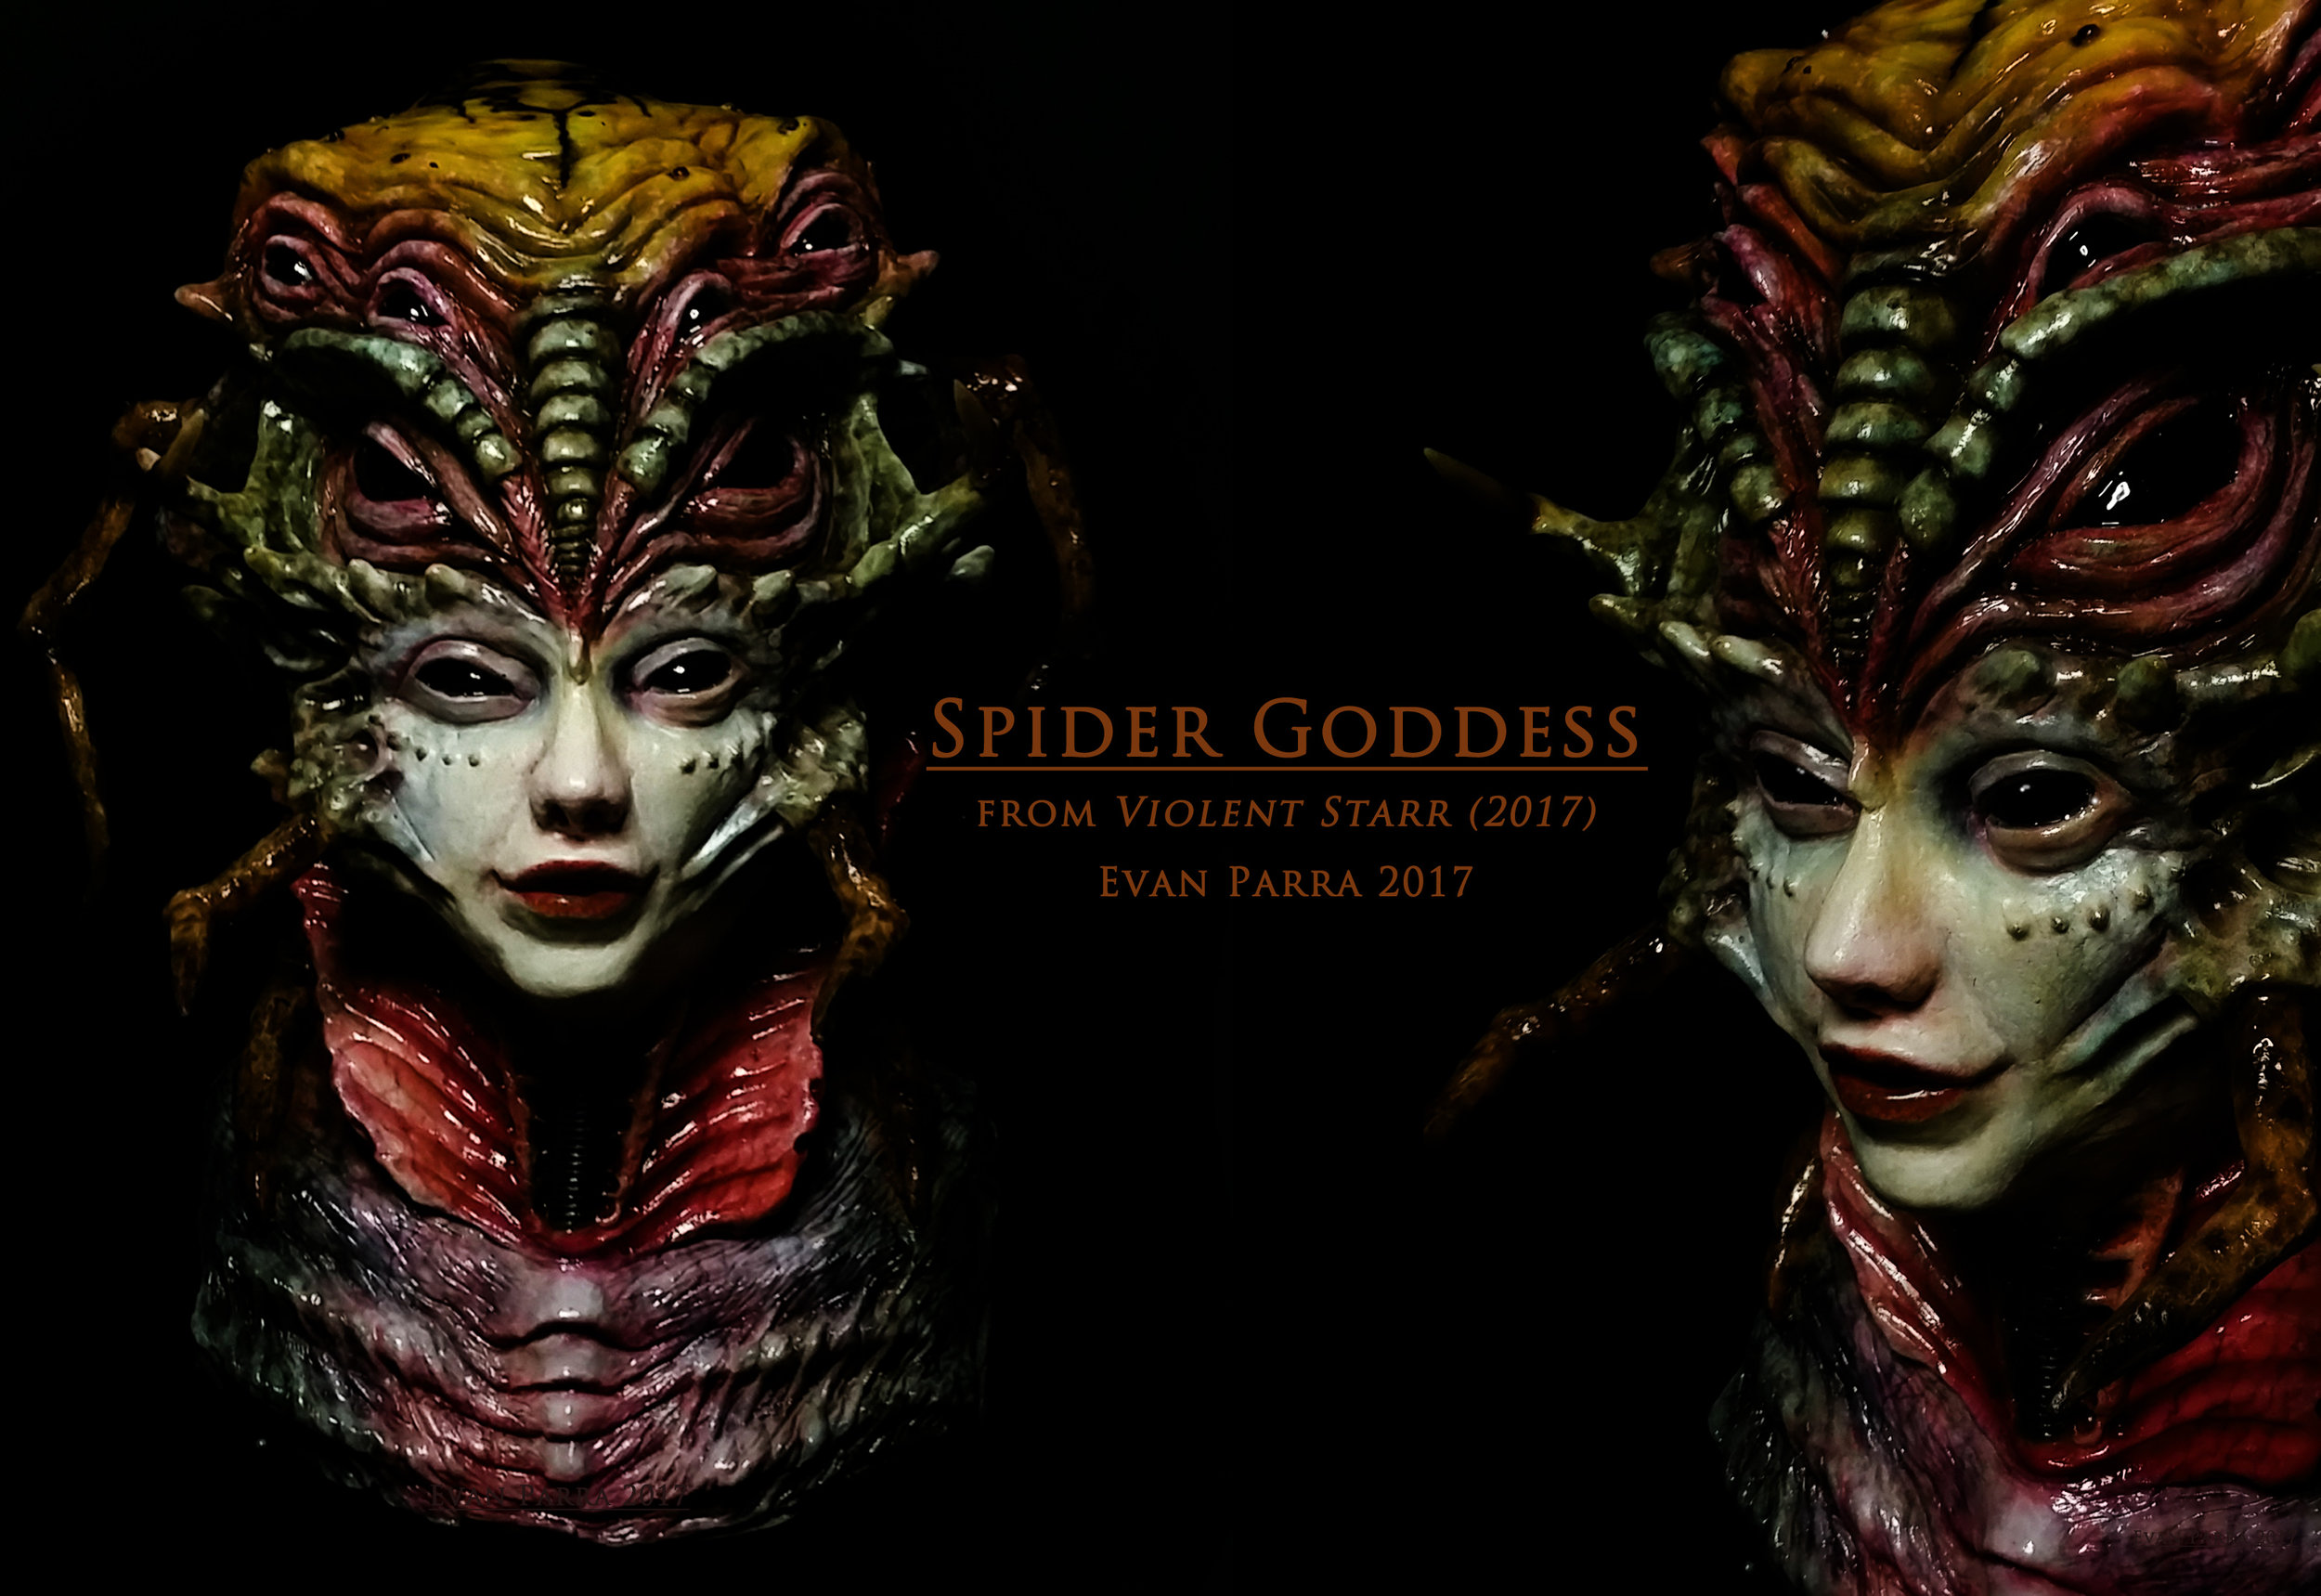 Spider Goddess (Violent Starr 2017)